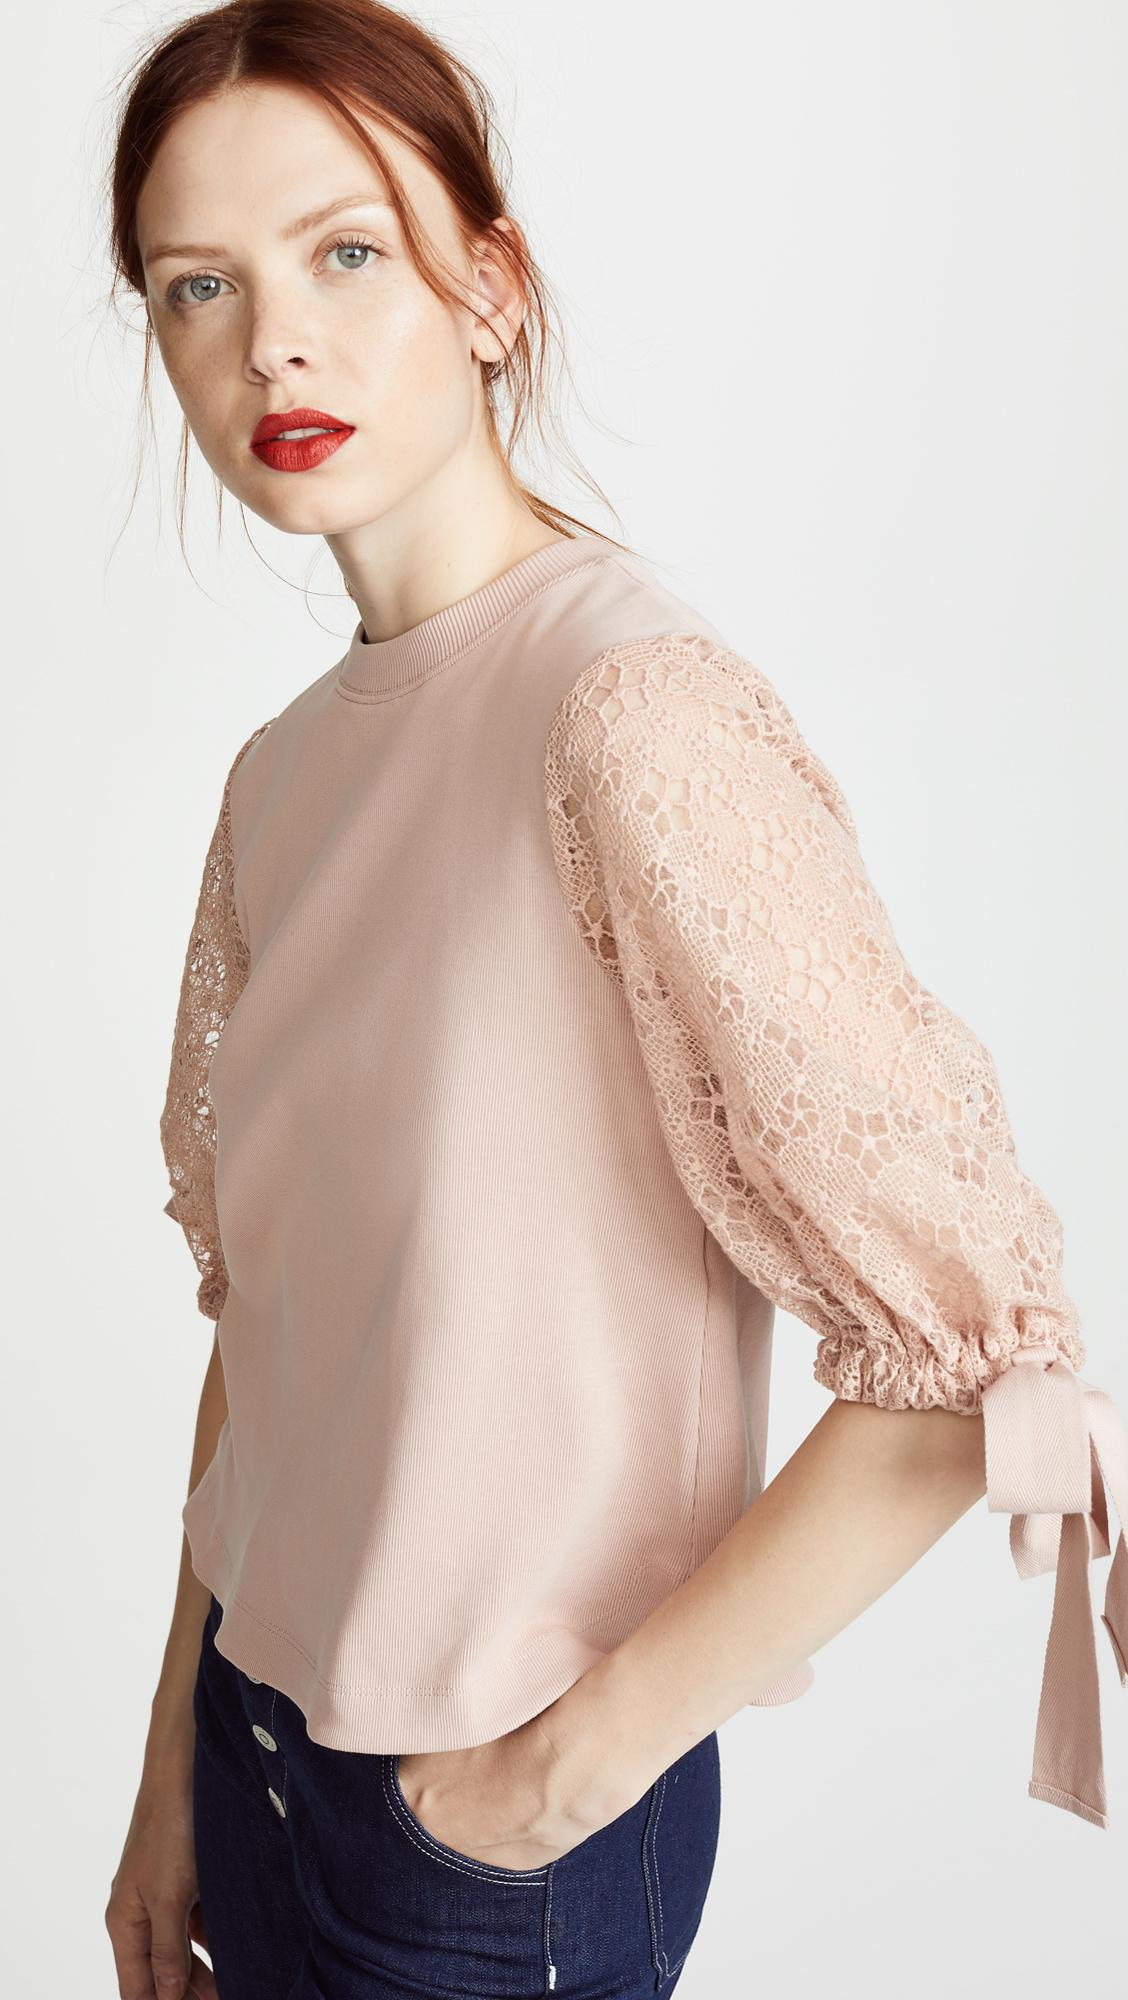 b582d7672dd0a Lyst - See By Chloé Lace Puff Sleeve Top in Pink